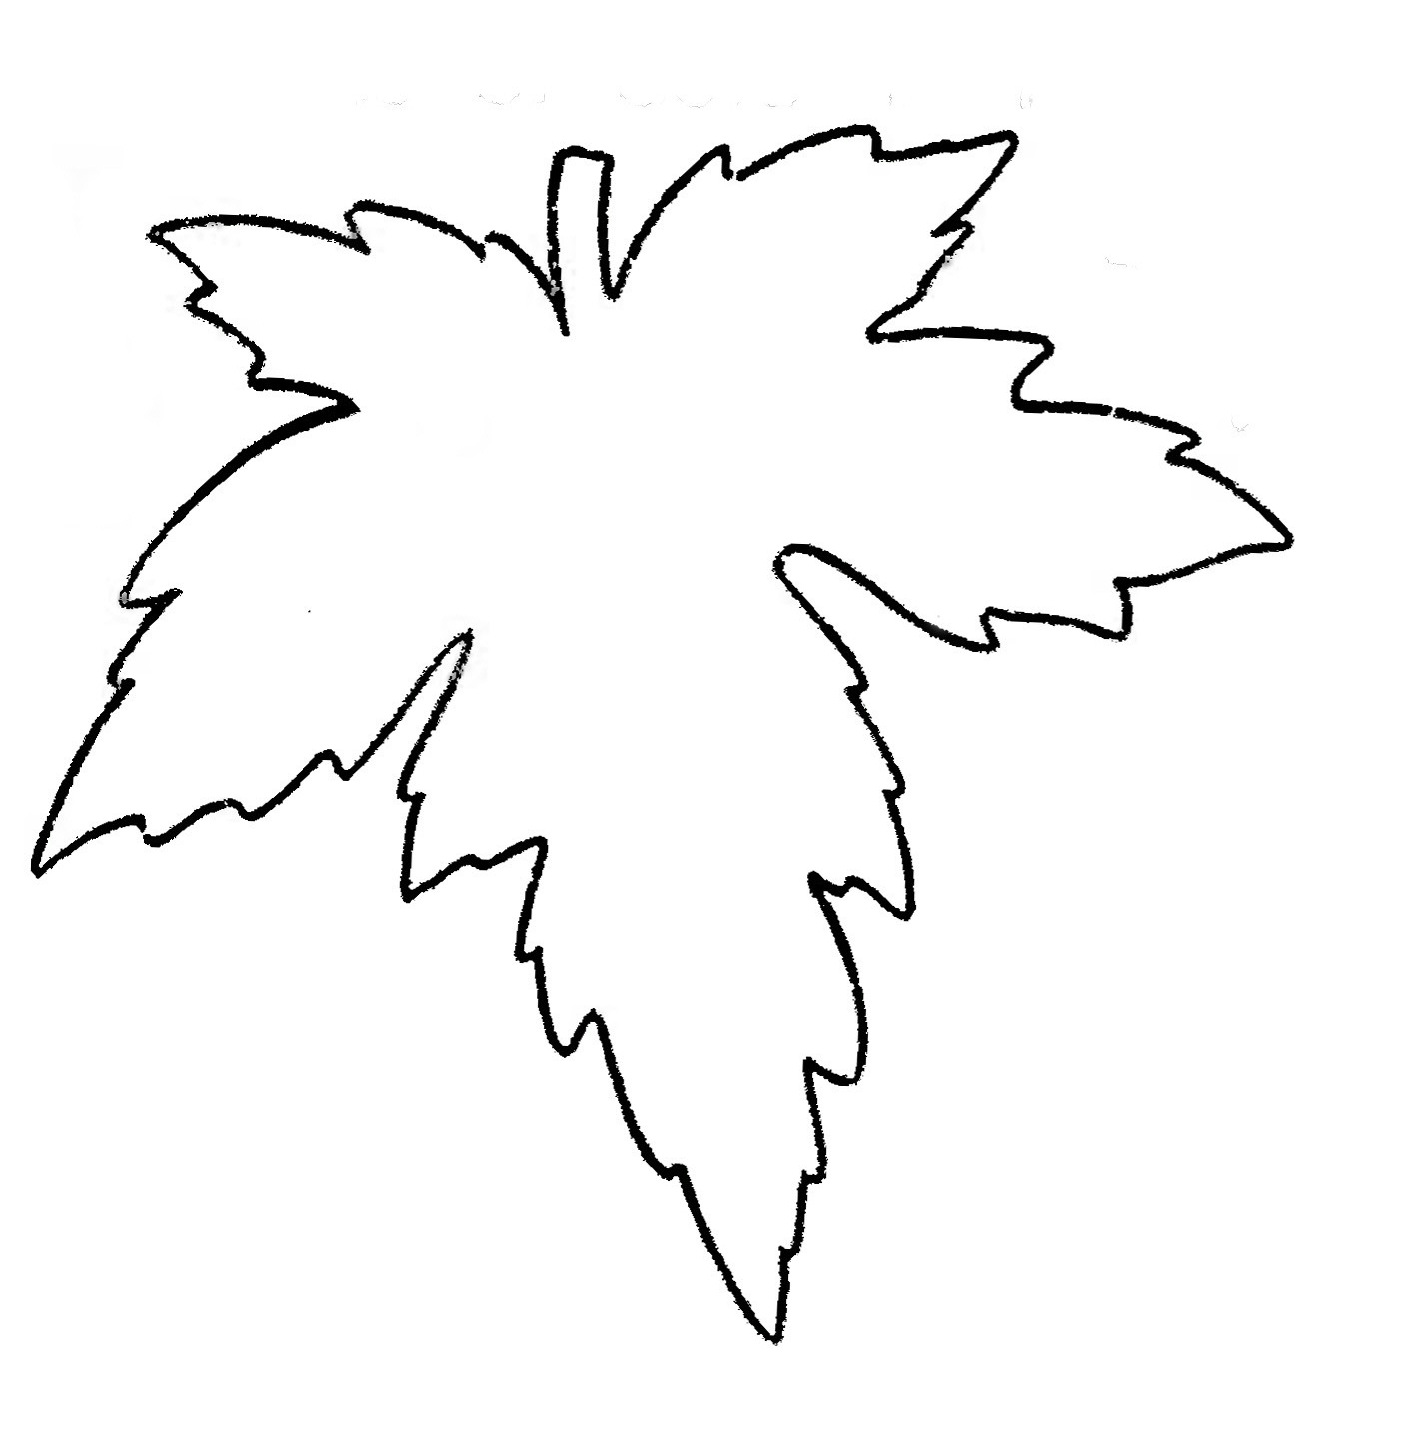 Leaf Outline Template - ClipArt Best